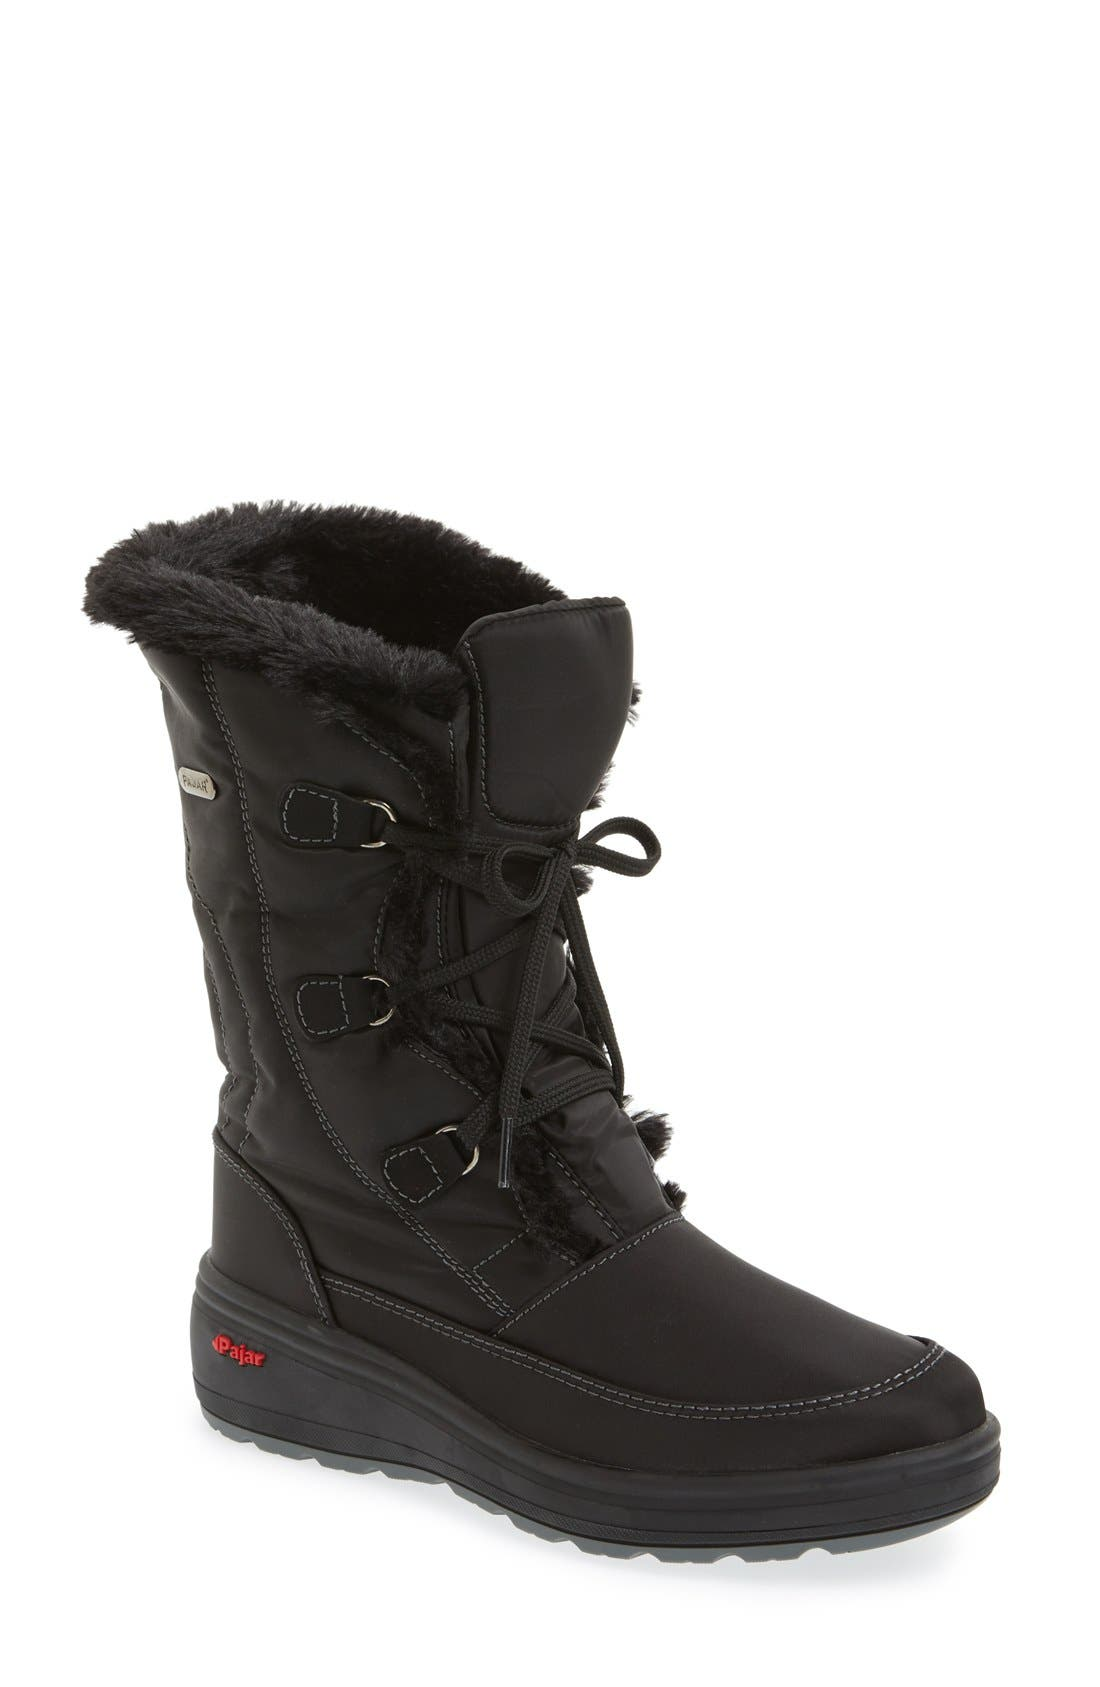 Pajar Women's 'Marcie' Waterproof Snow Boot With Faux Fur Collar clNRNOa